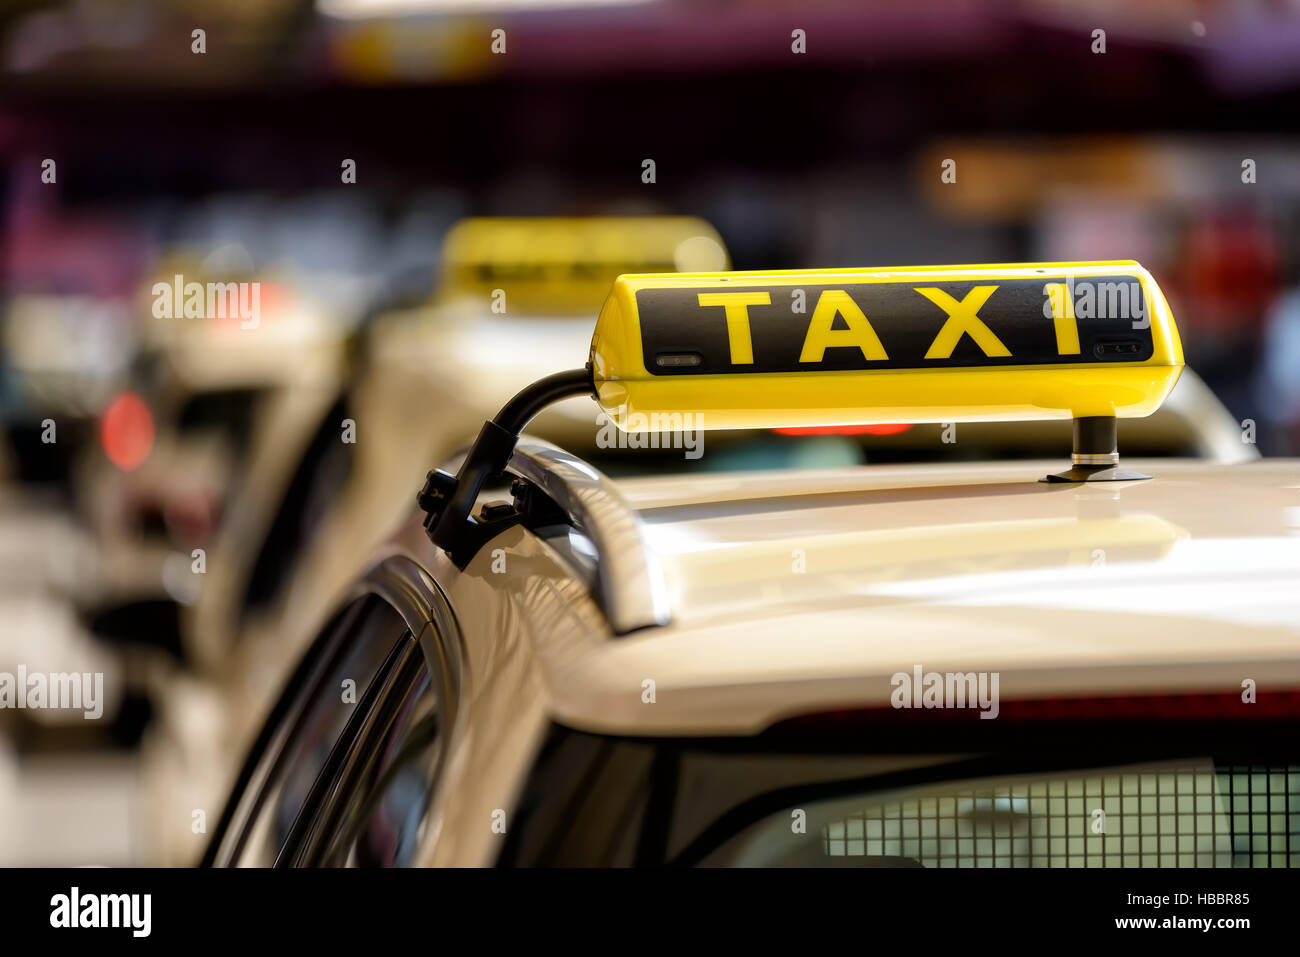 Taxi - Stock Image